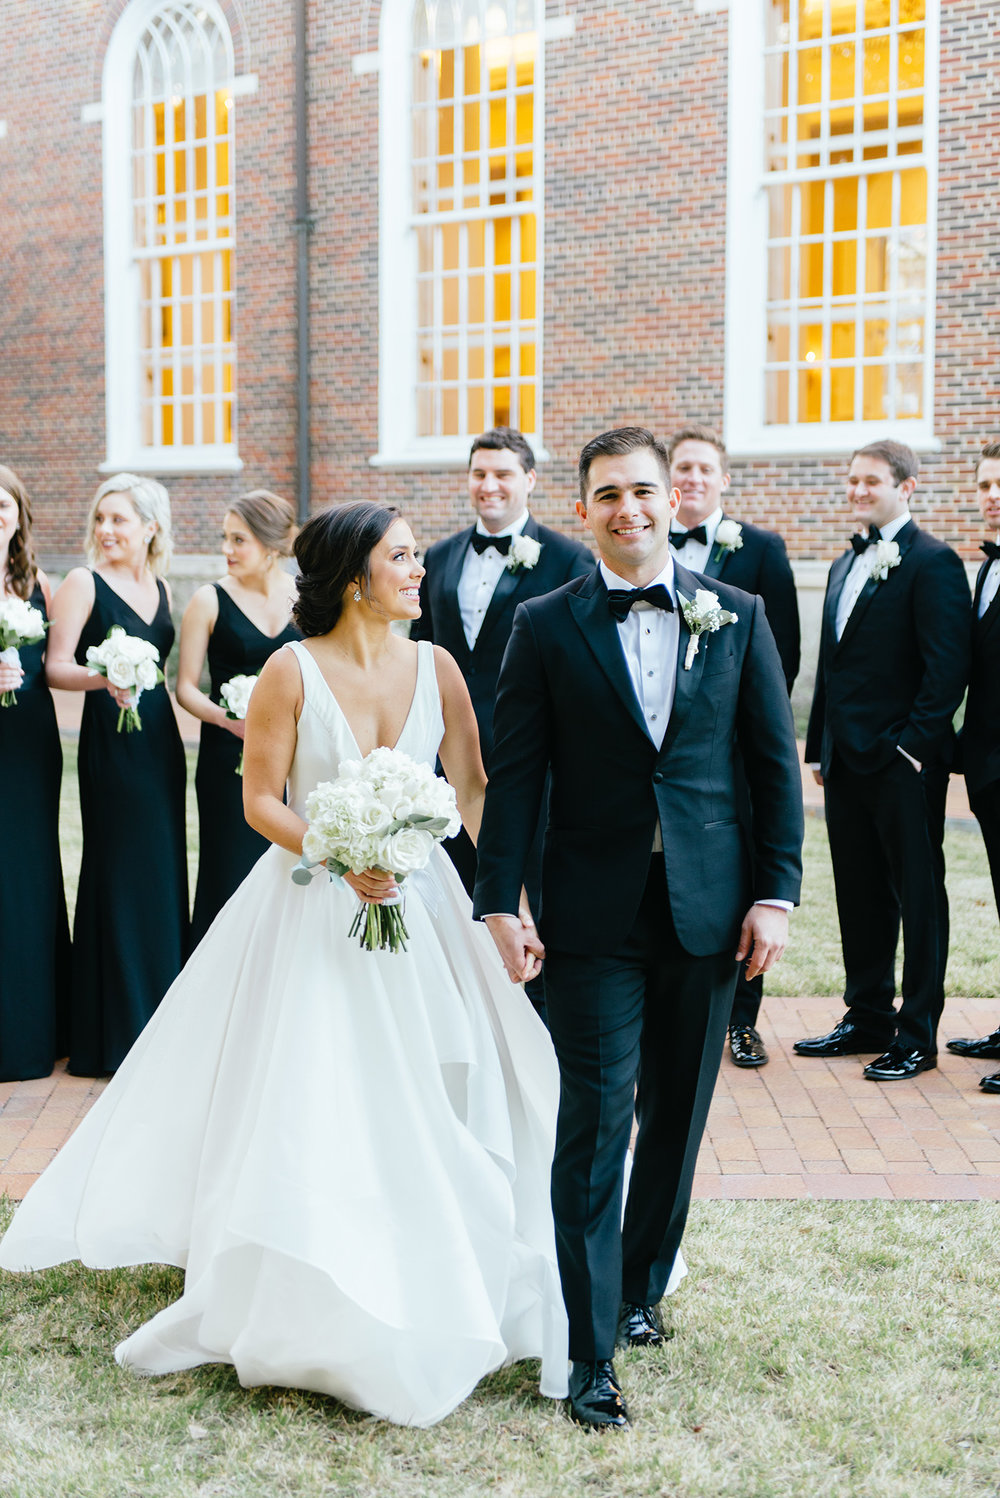 MattAndJulieWeddings-PerkensChapelWedding-RoomonMain-Alyssa+Chris271.jpg